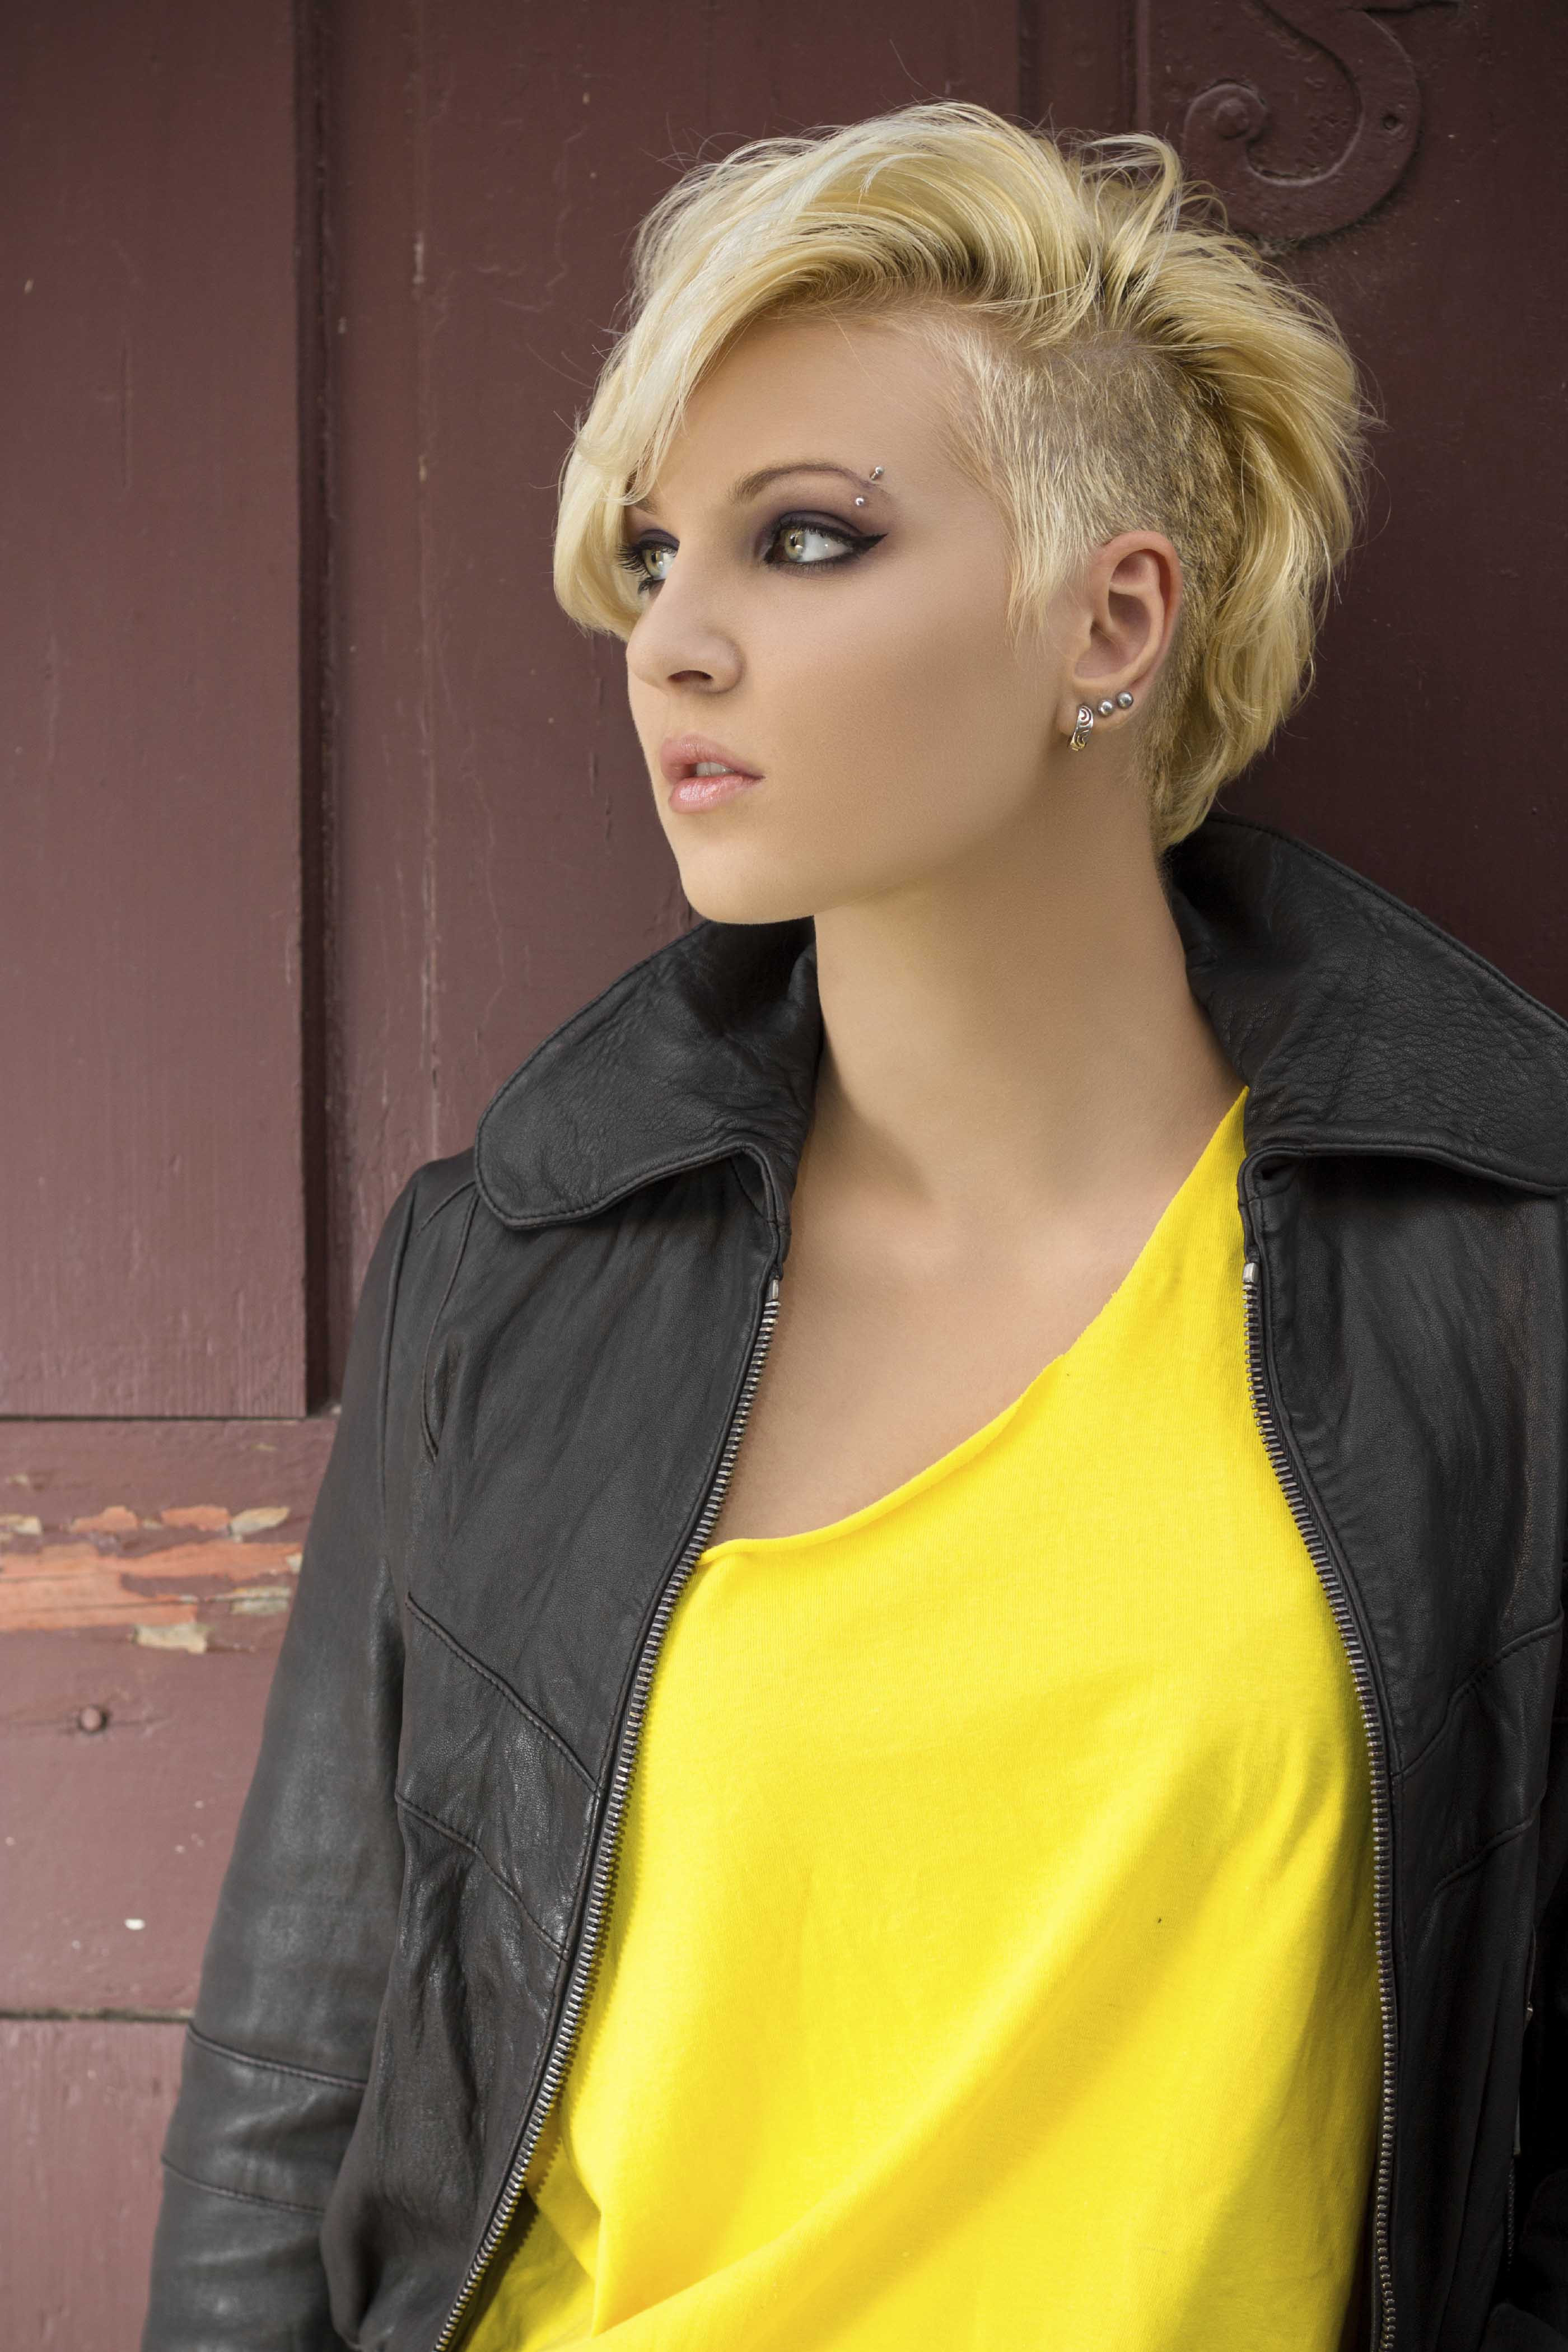 Best ideas about Female Haircuts . Save or Pin 8 Fashionable Mohawk Hairstyles for Women From Haute to Now.